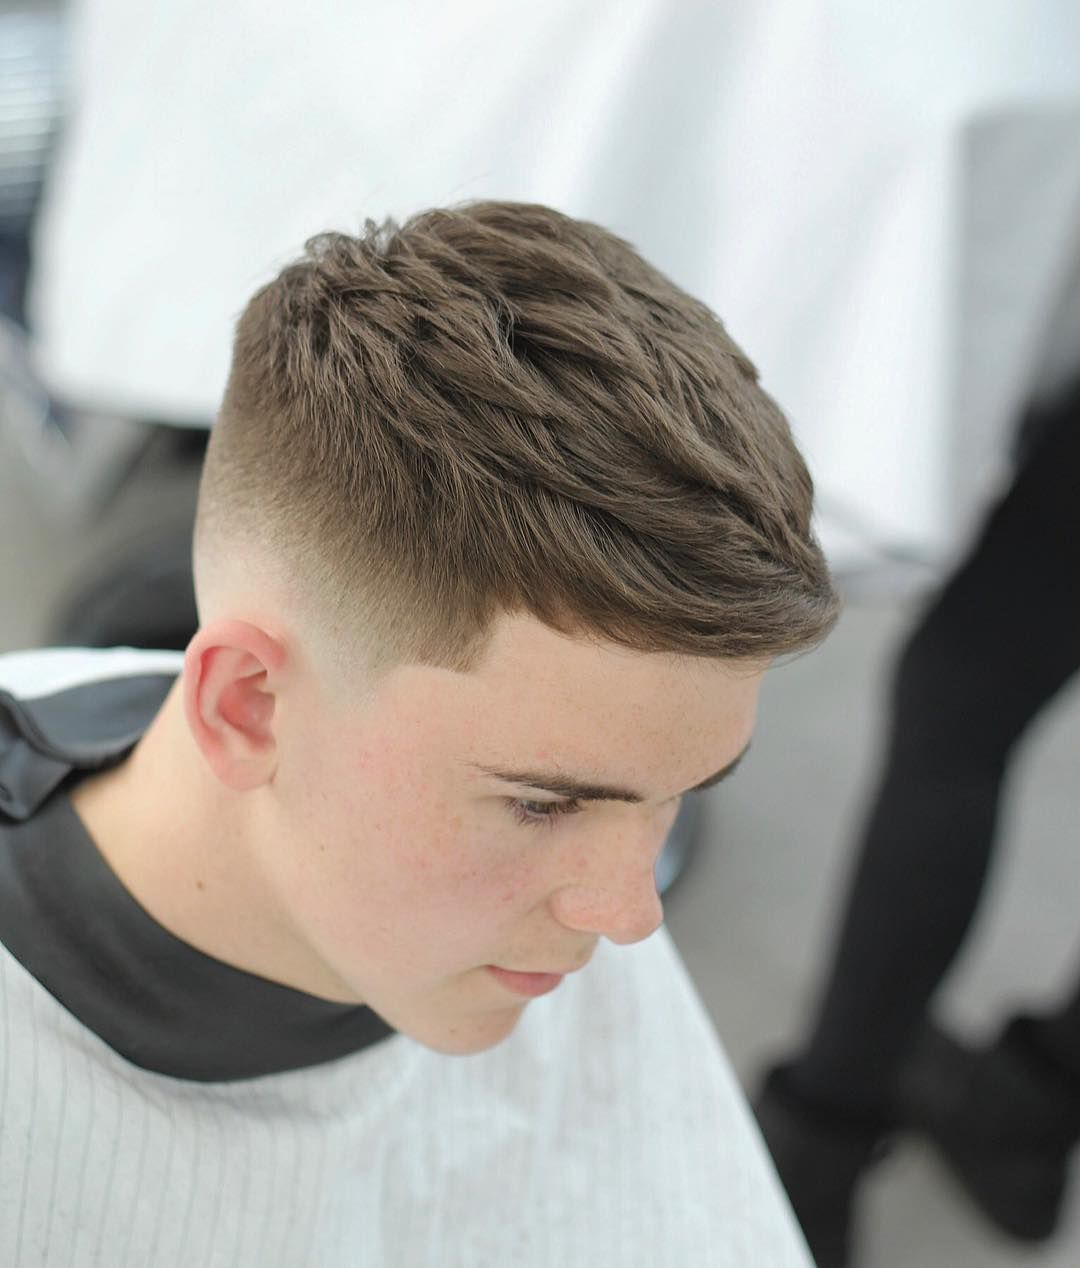 These Are The Best Men S Haircuts And Cool Hairstyles For Men To Get